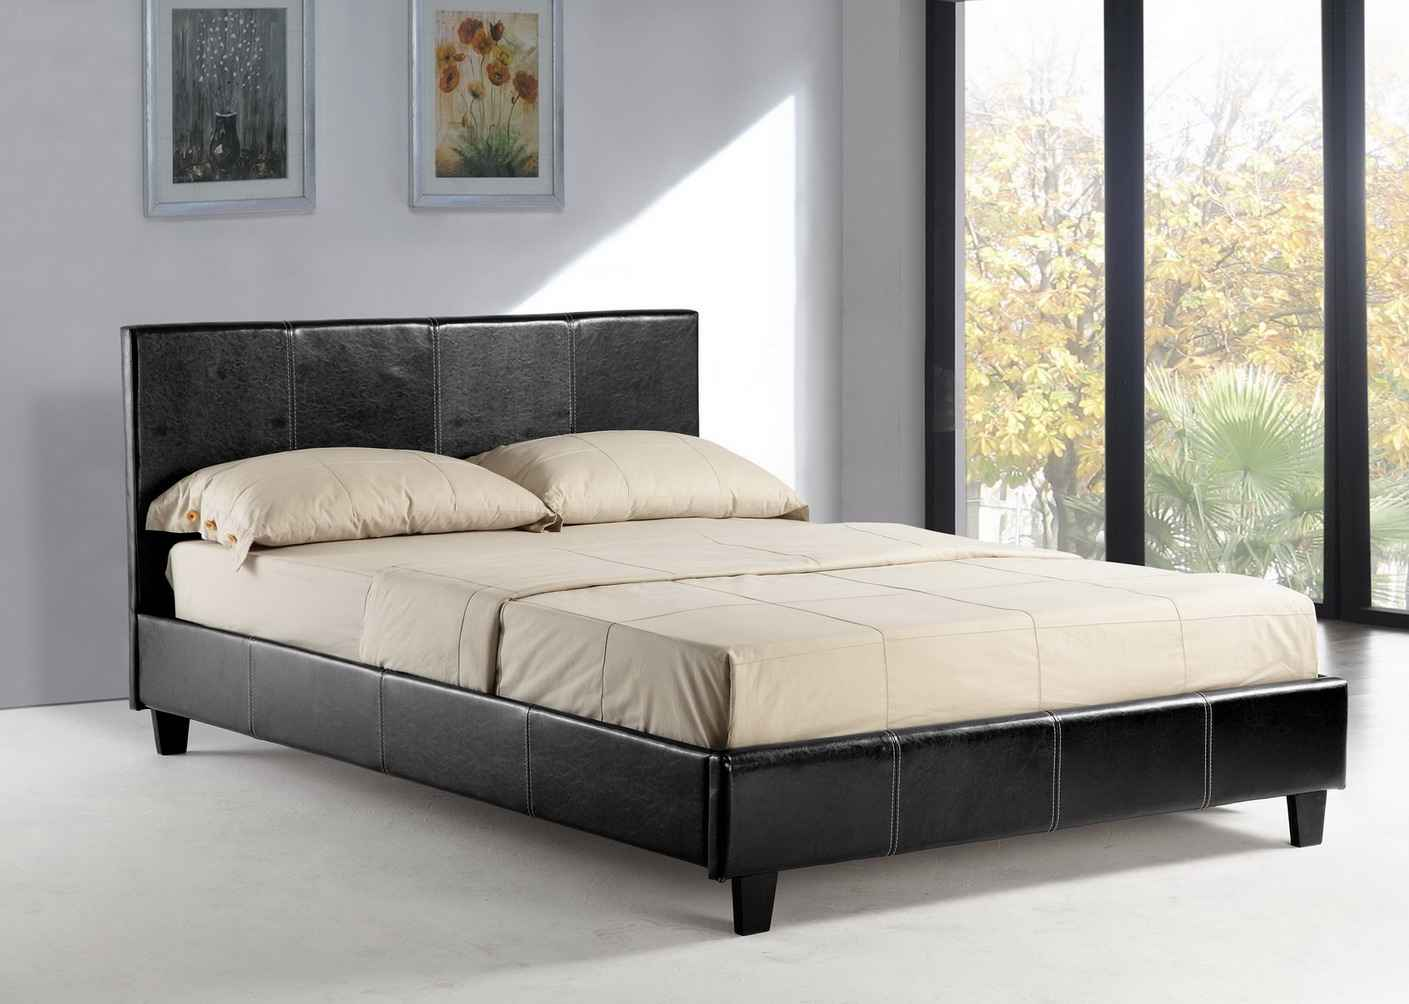 Home Queen Black Platform Beds